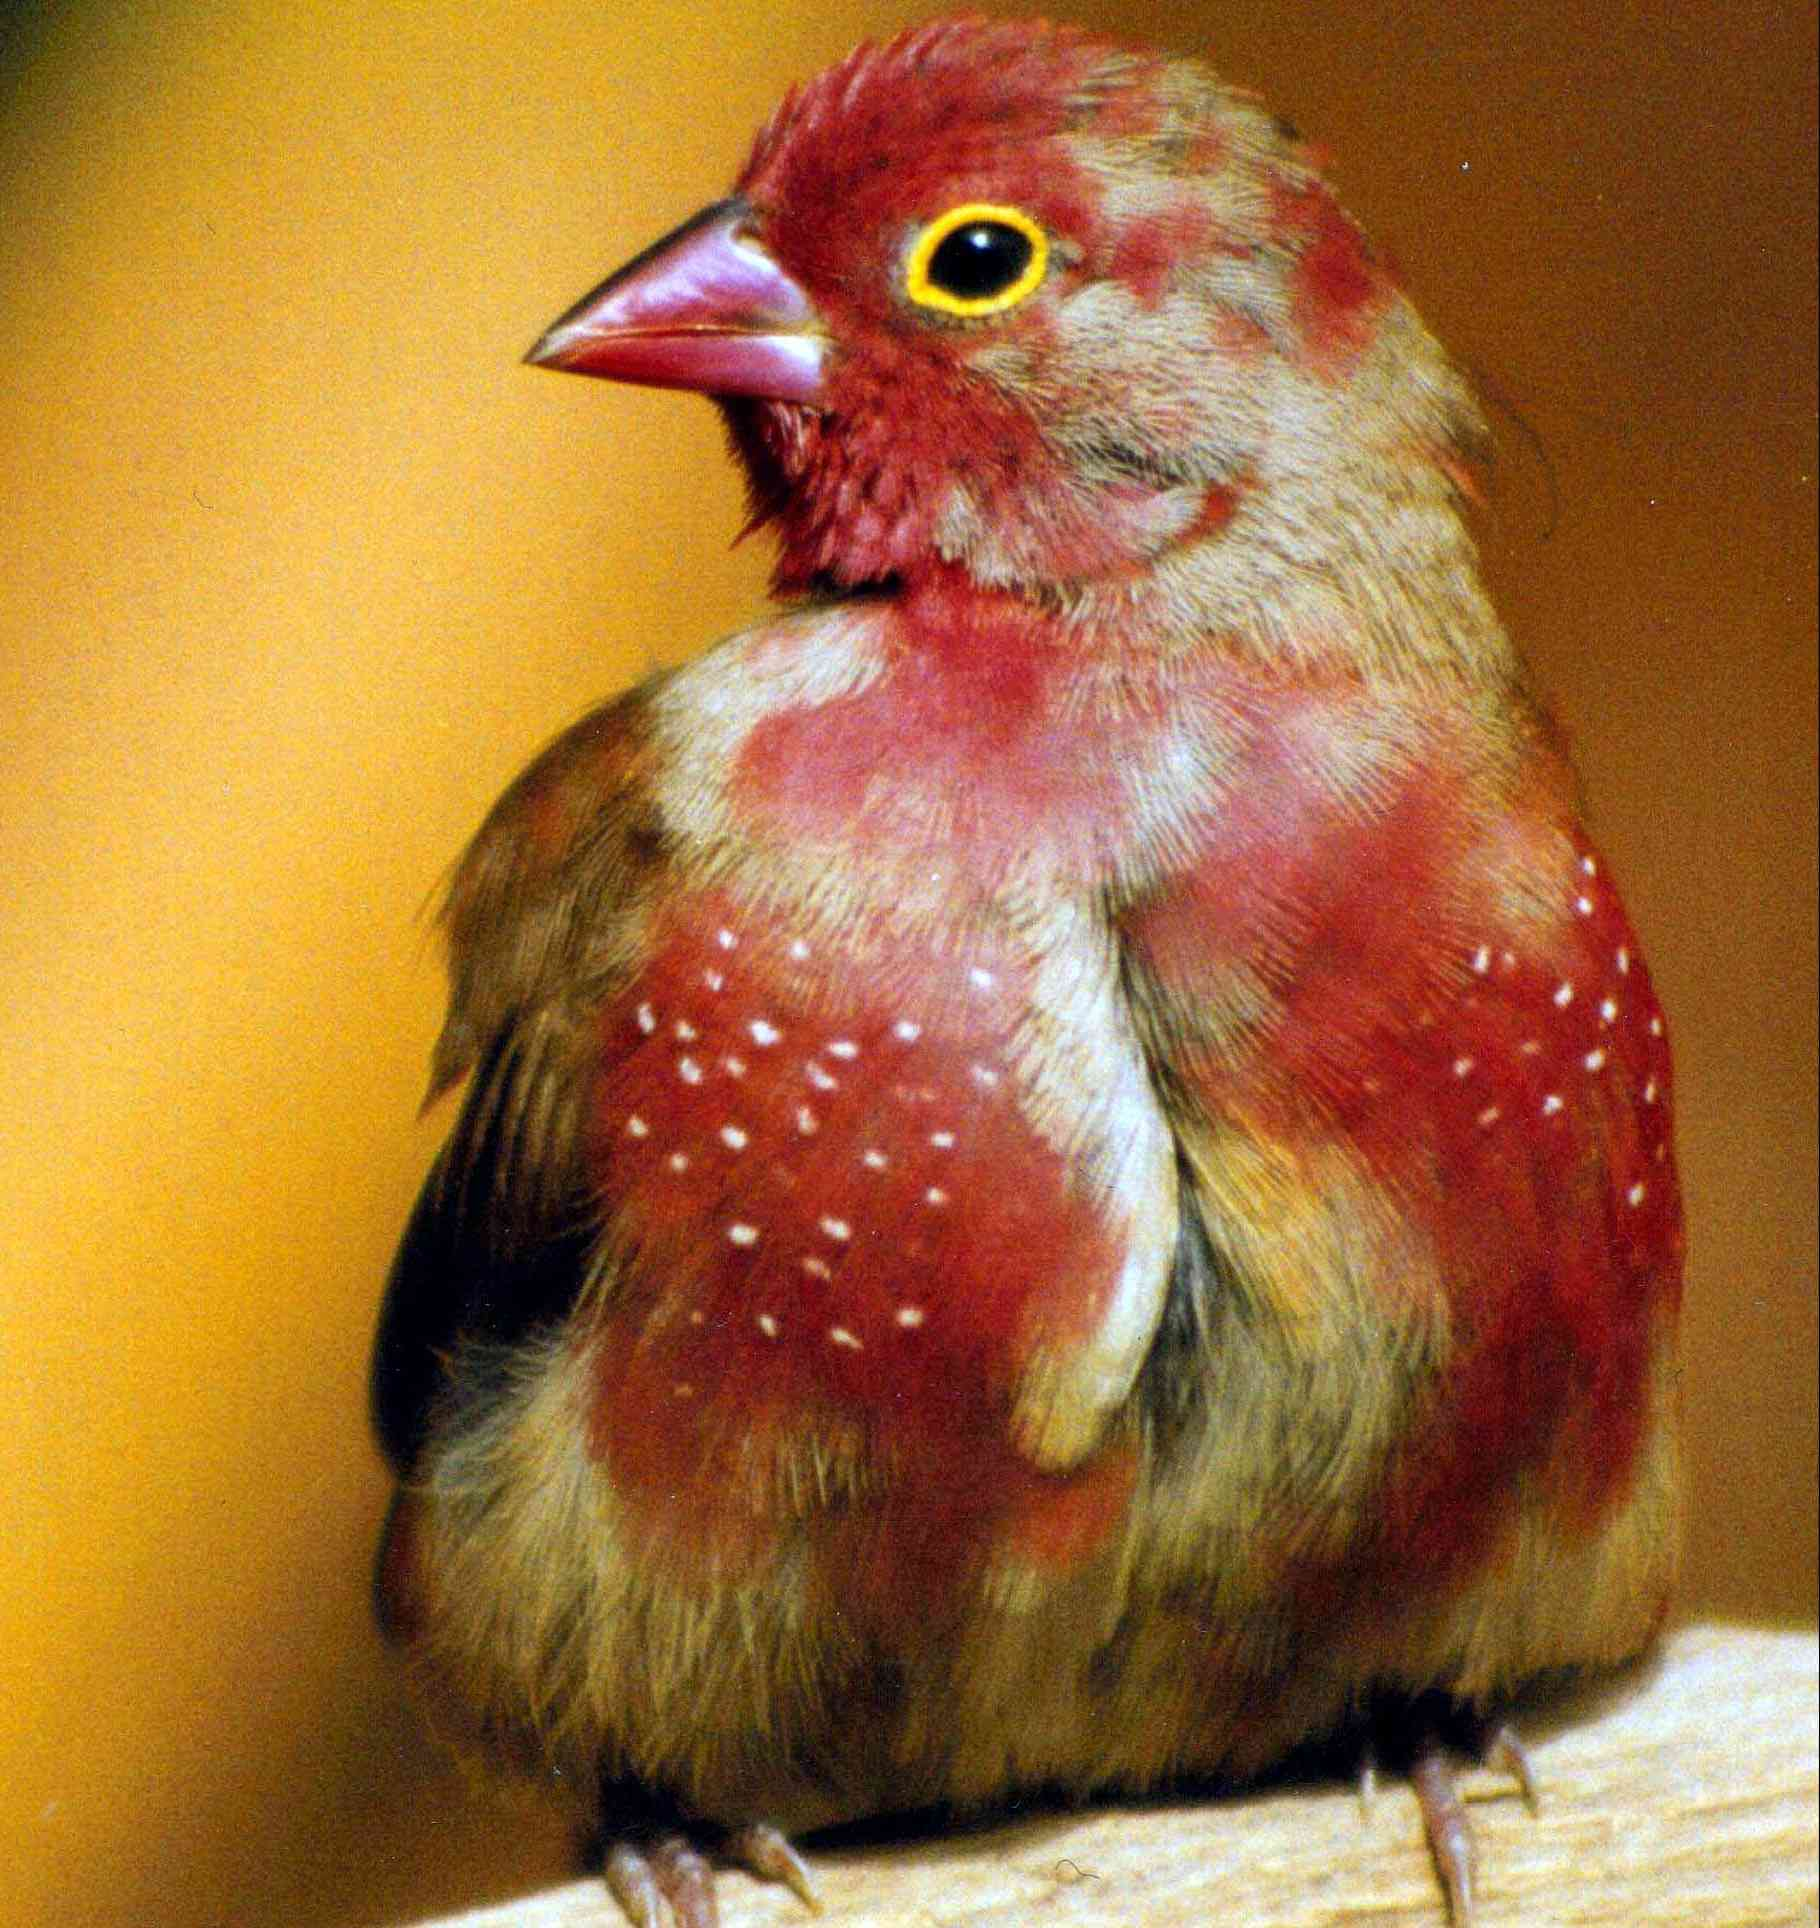 Male Red-billed Firefinch, eclipsing into first breeding plumage by Joost & Susanne De Batts